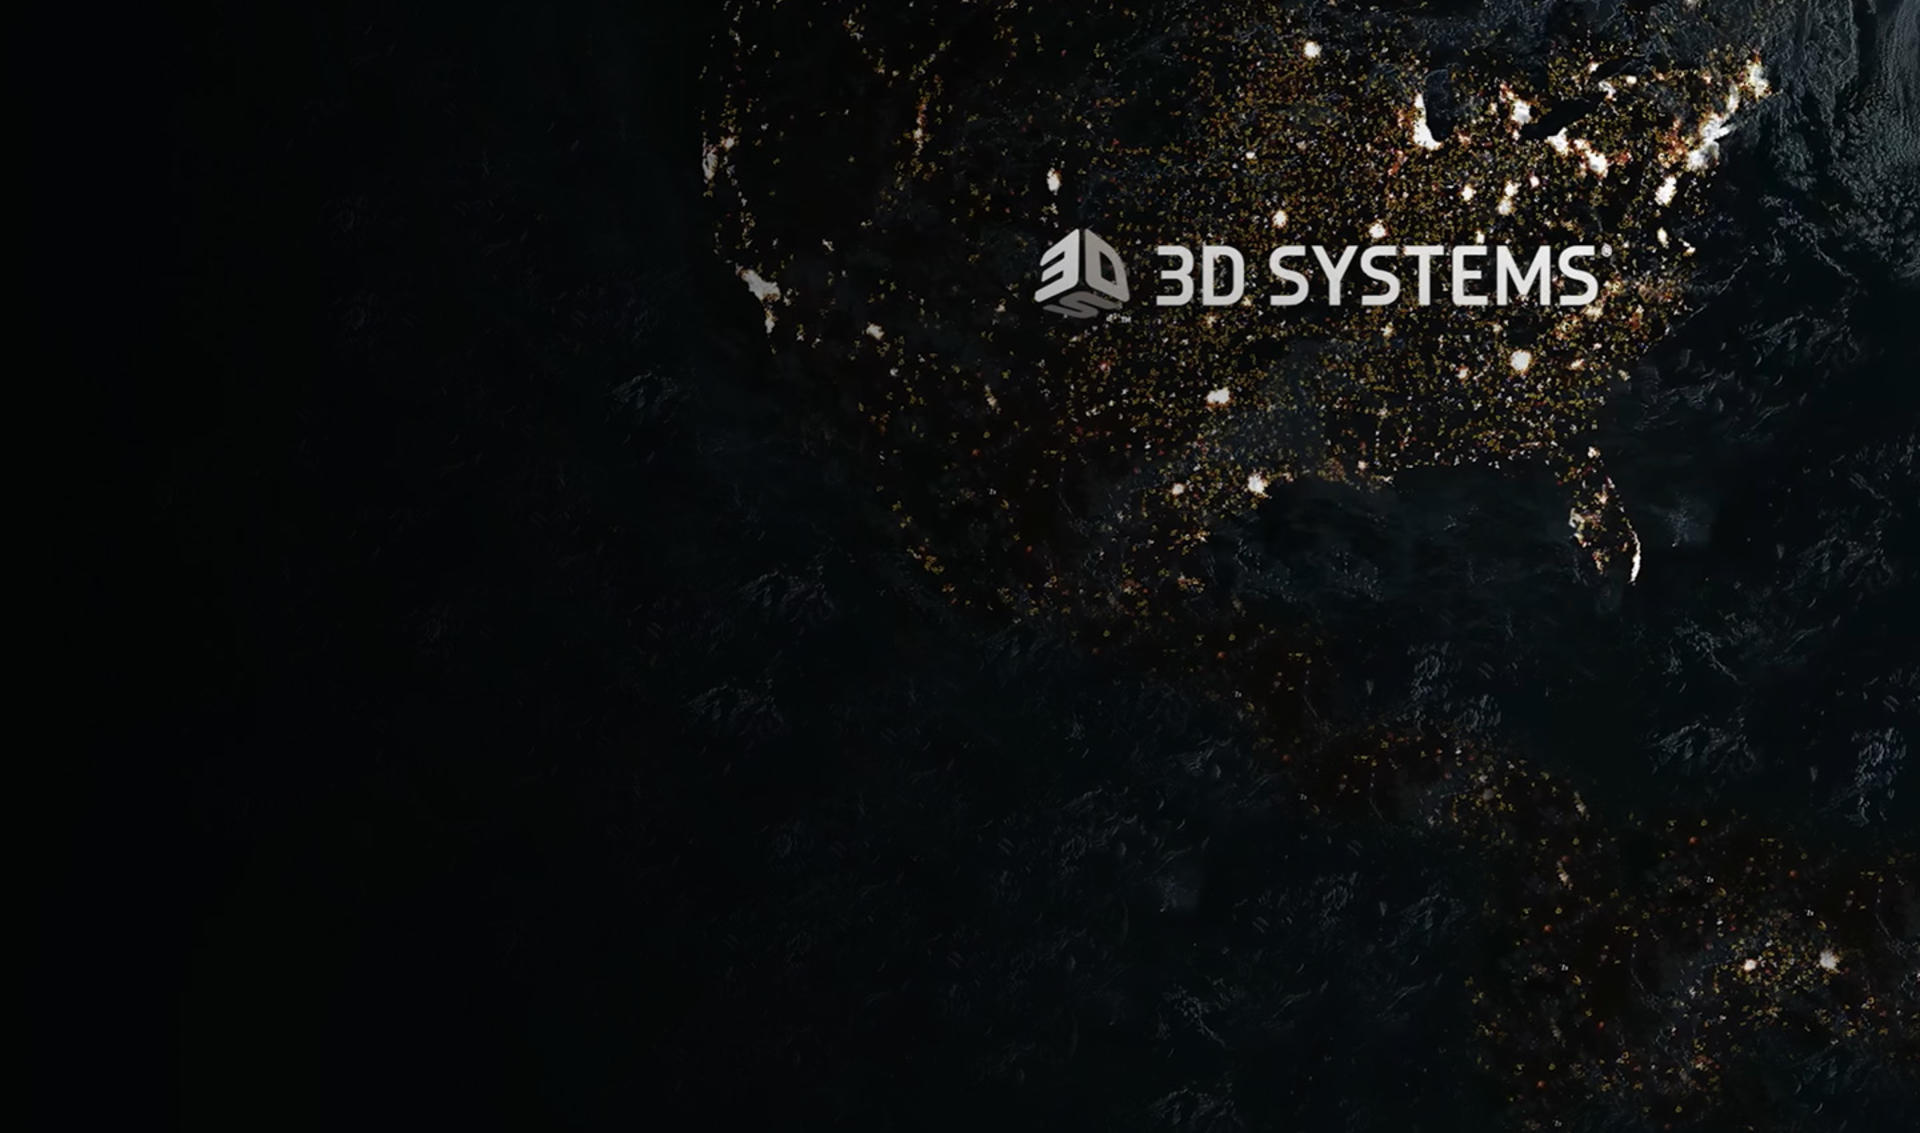 3d systems map of the world about top banner